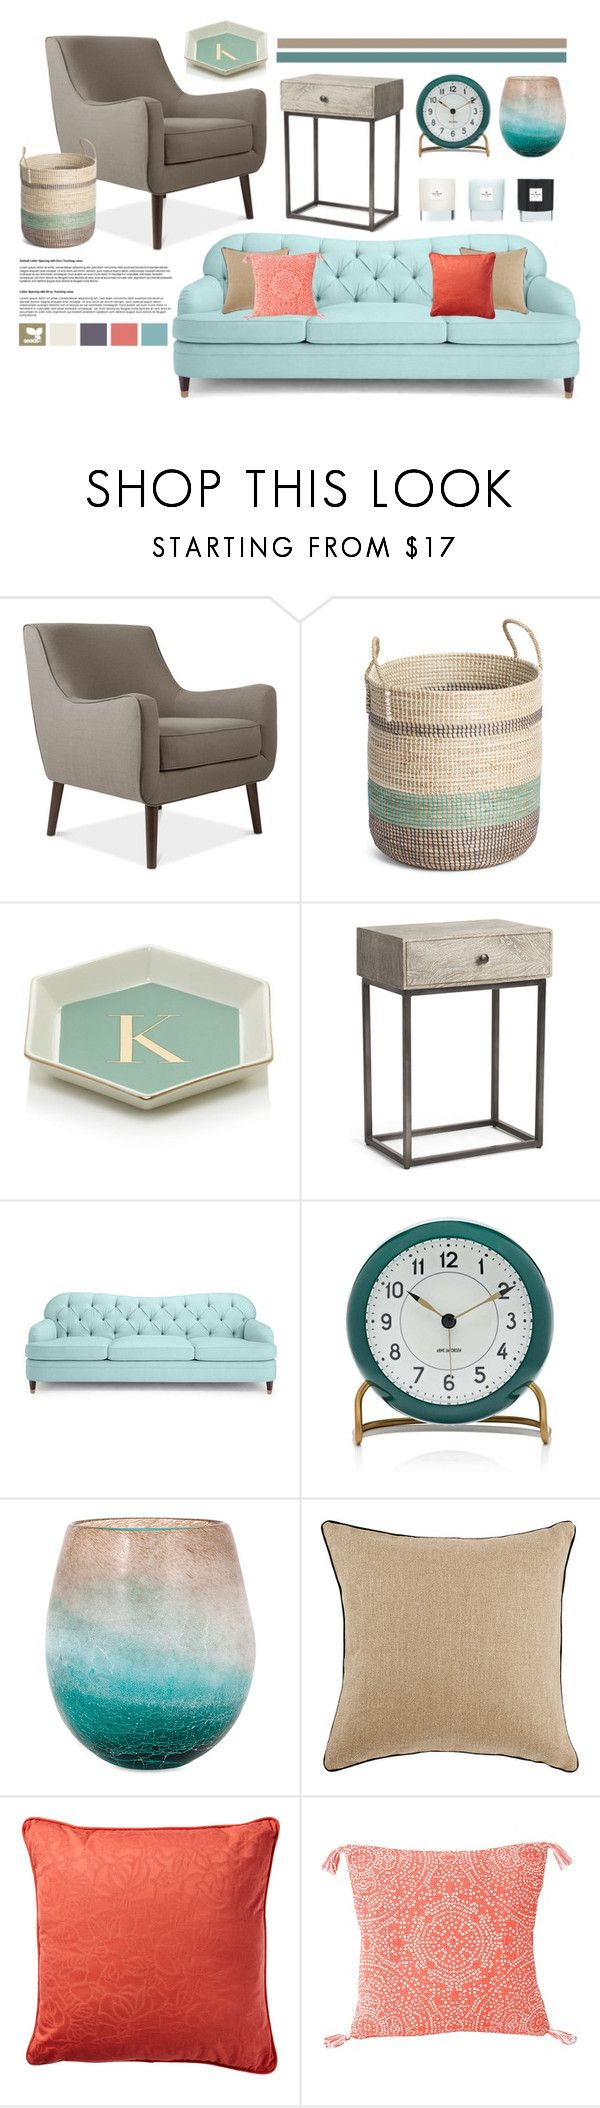 """""""Sea Breeze"""" by cherieaustin on Polyvore featuring interior, interiors, interior design, home, home decor, interior decorating, Twelve NYC, Levi's, Kate Spade and Carl Mertens"""